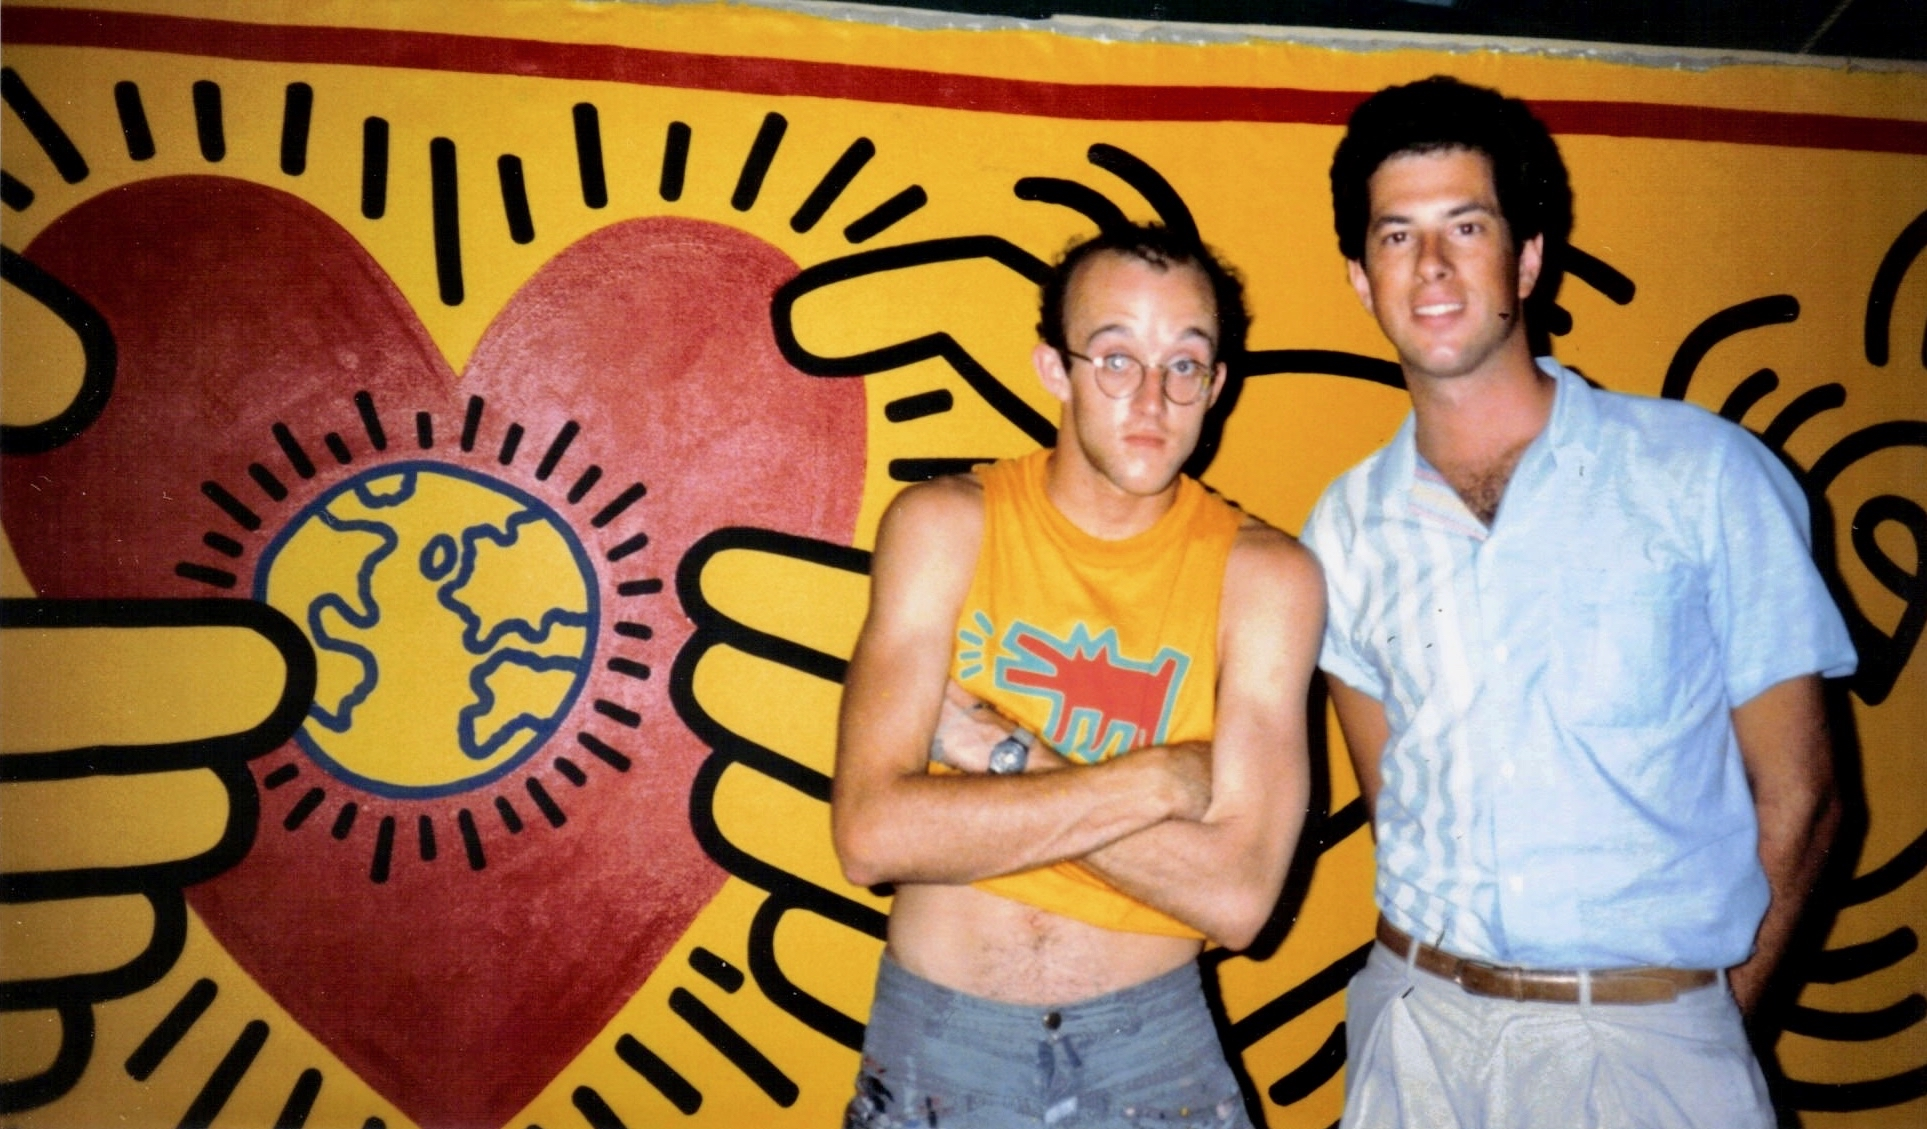 Artist and activist Keith haring with Larry Lieberman at Live Aid (1985)